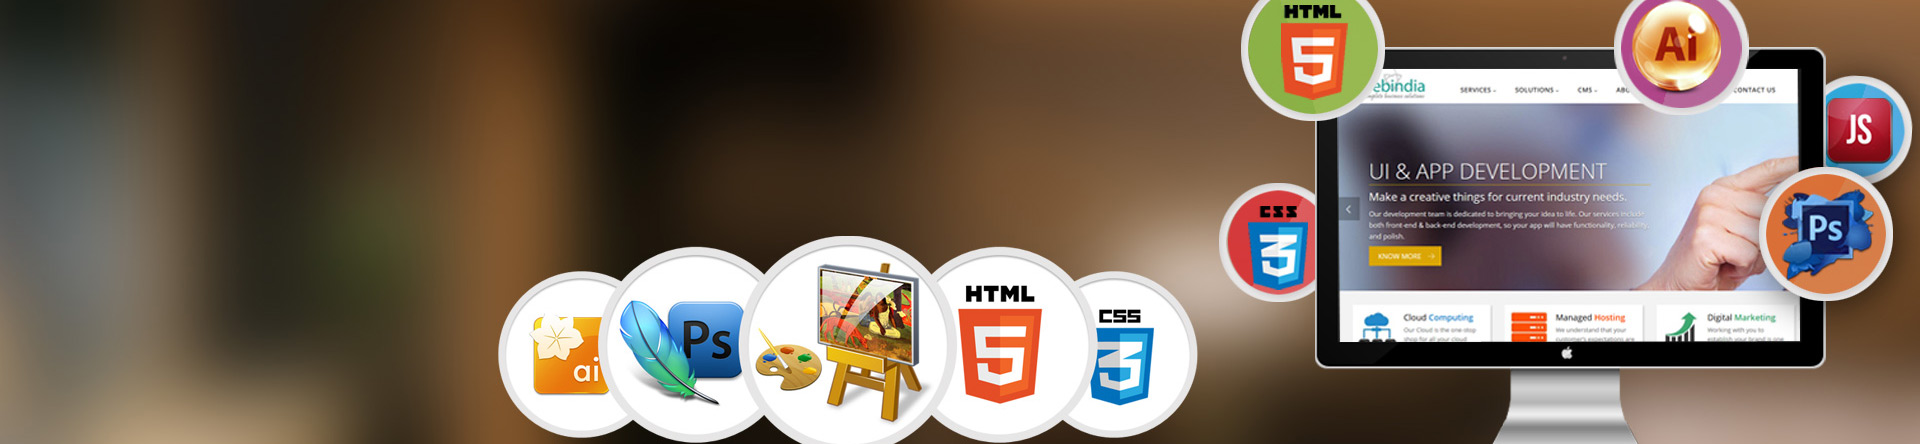 freelancer, website development, website design, mobile apps, hosting